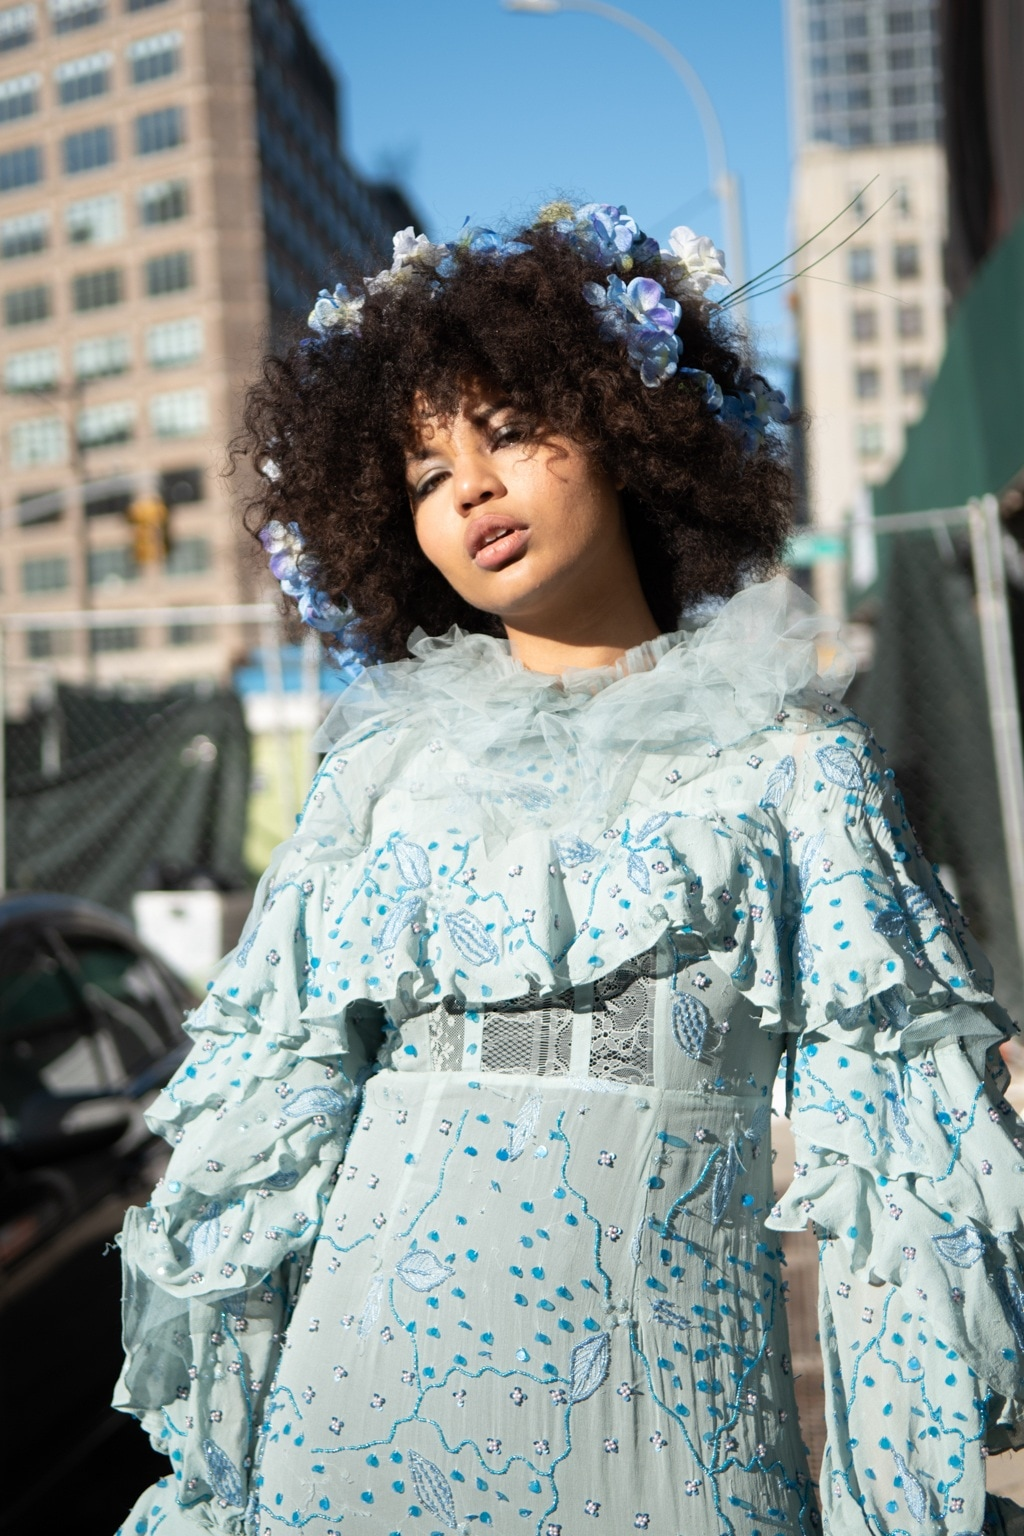 Spring haircuts: NYFW street style shot of a woman with afro hair with blue flowers in wearing a matching frilly blue floral dress